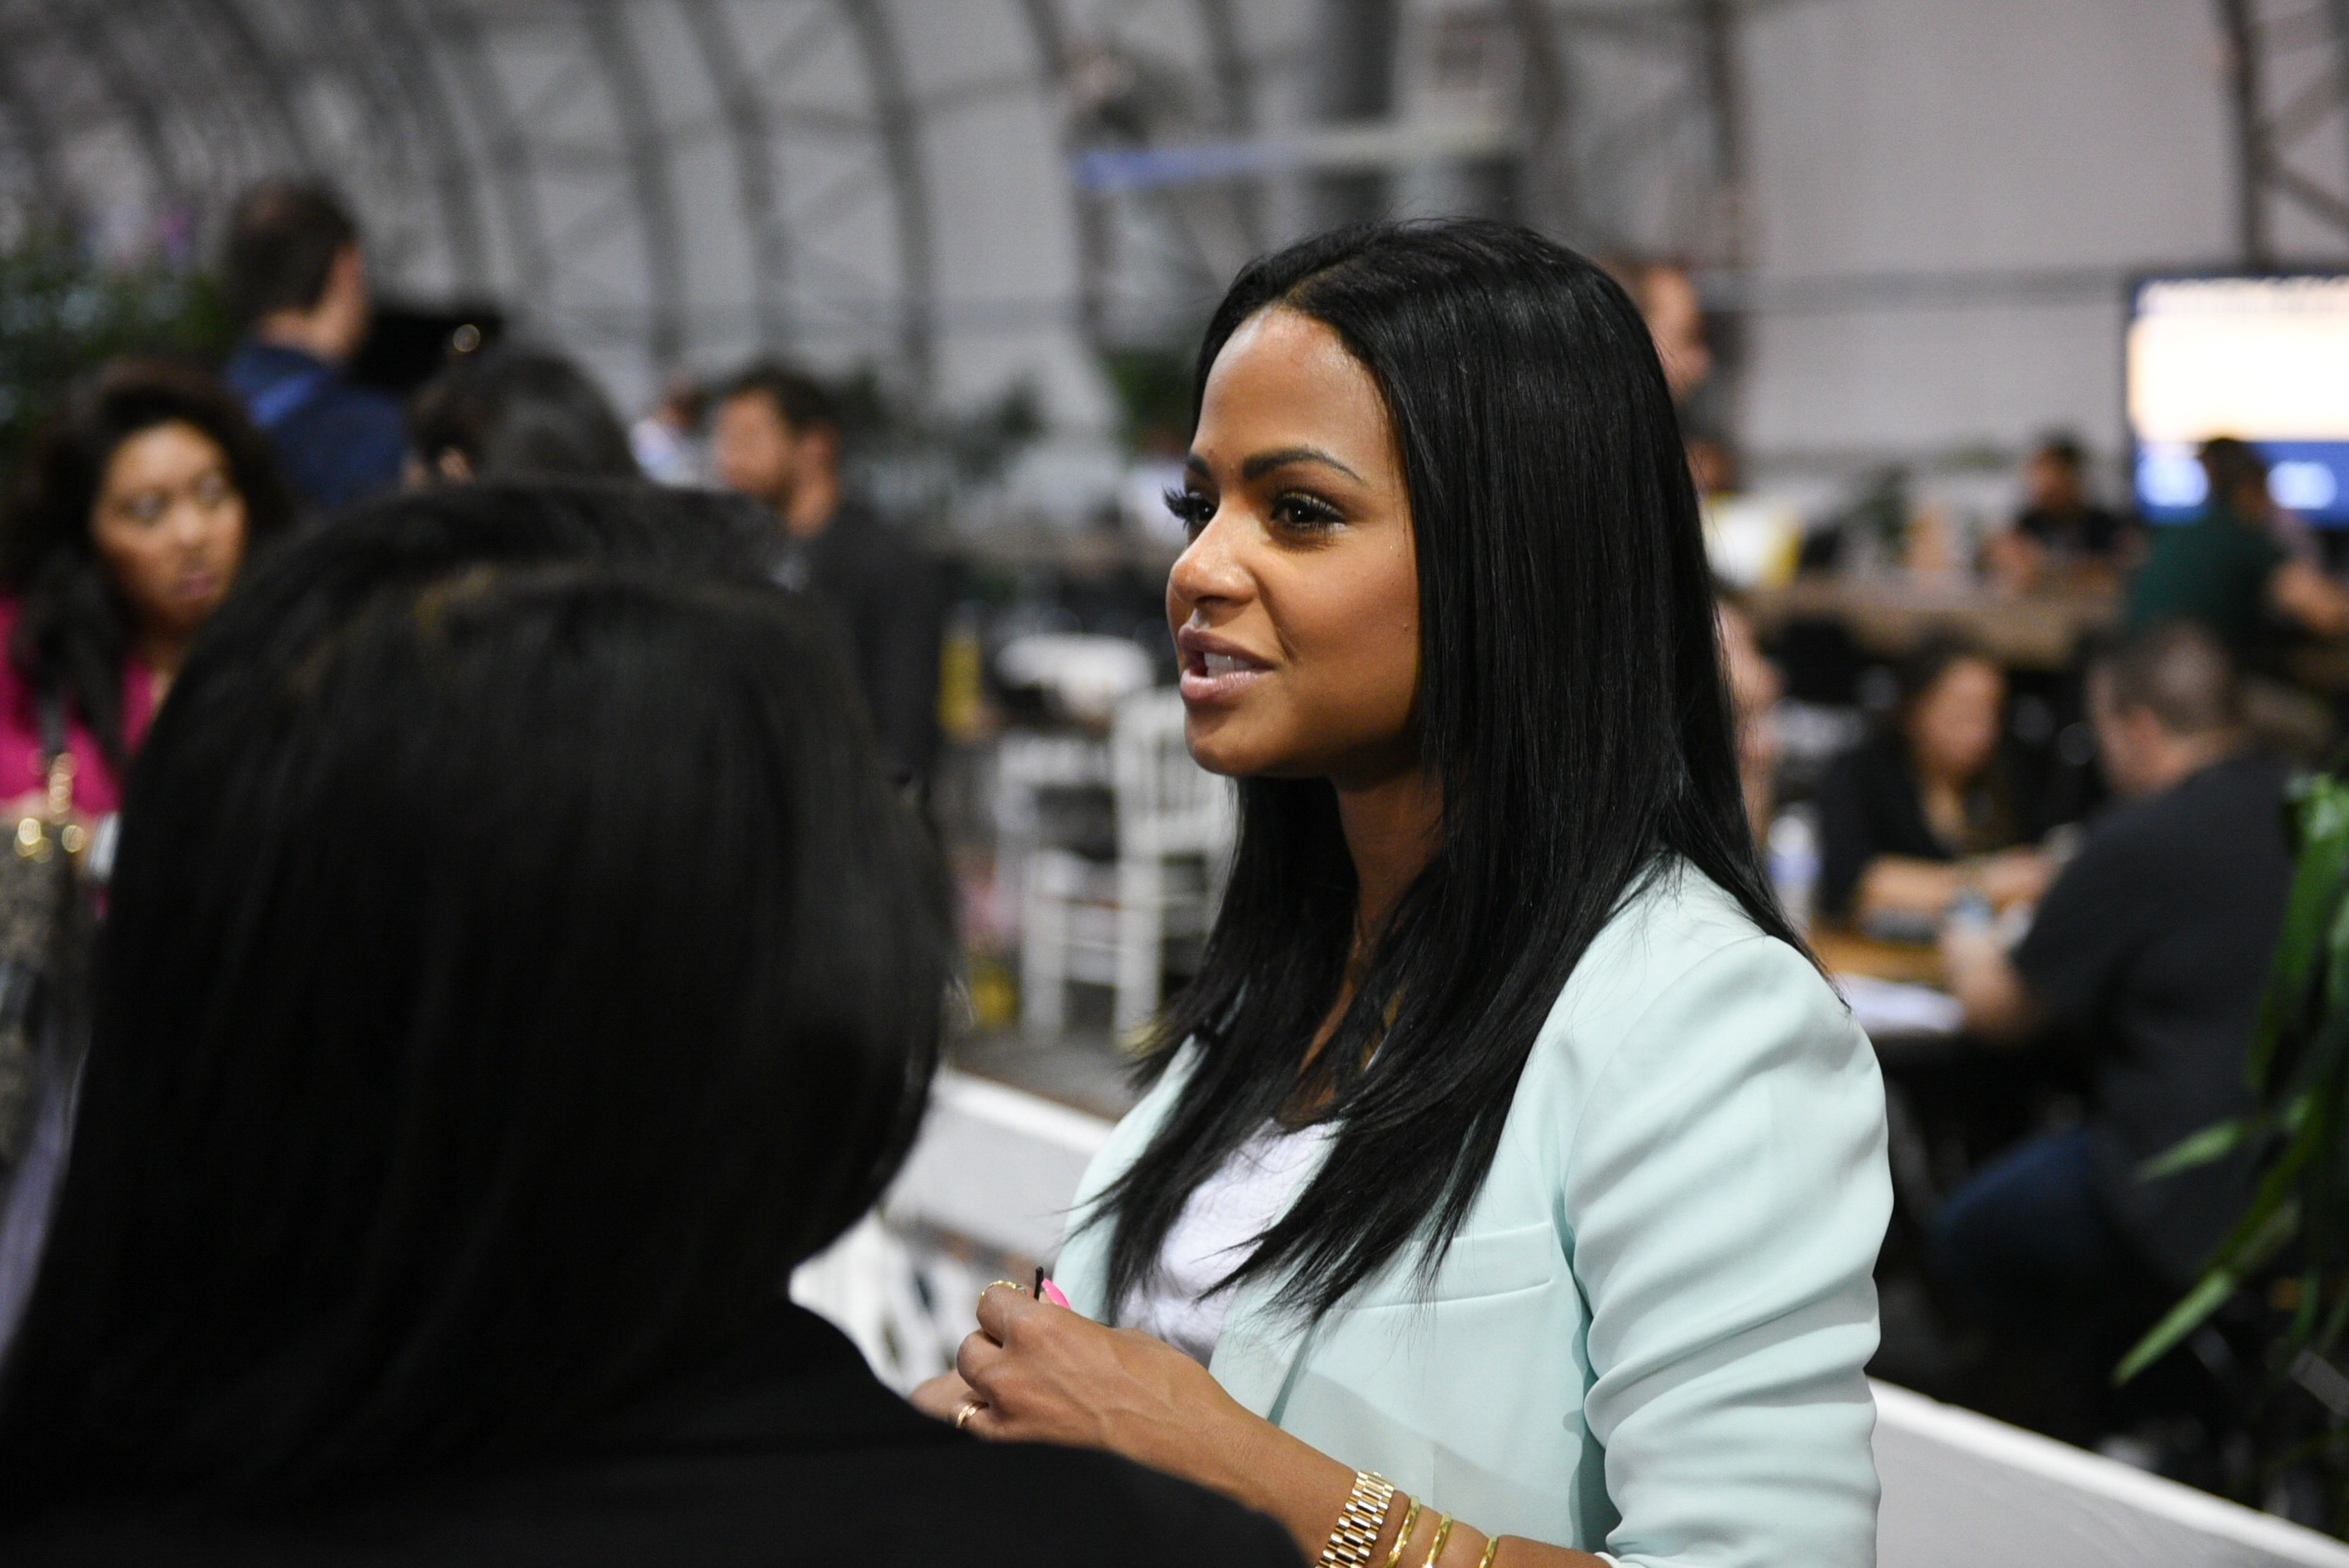 Christina Milian was a speaker at Collision Conference. She shared her experiences as an investor in tech and the French Girls app.